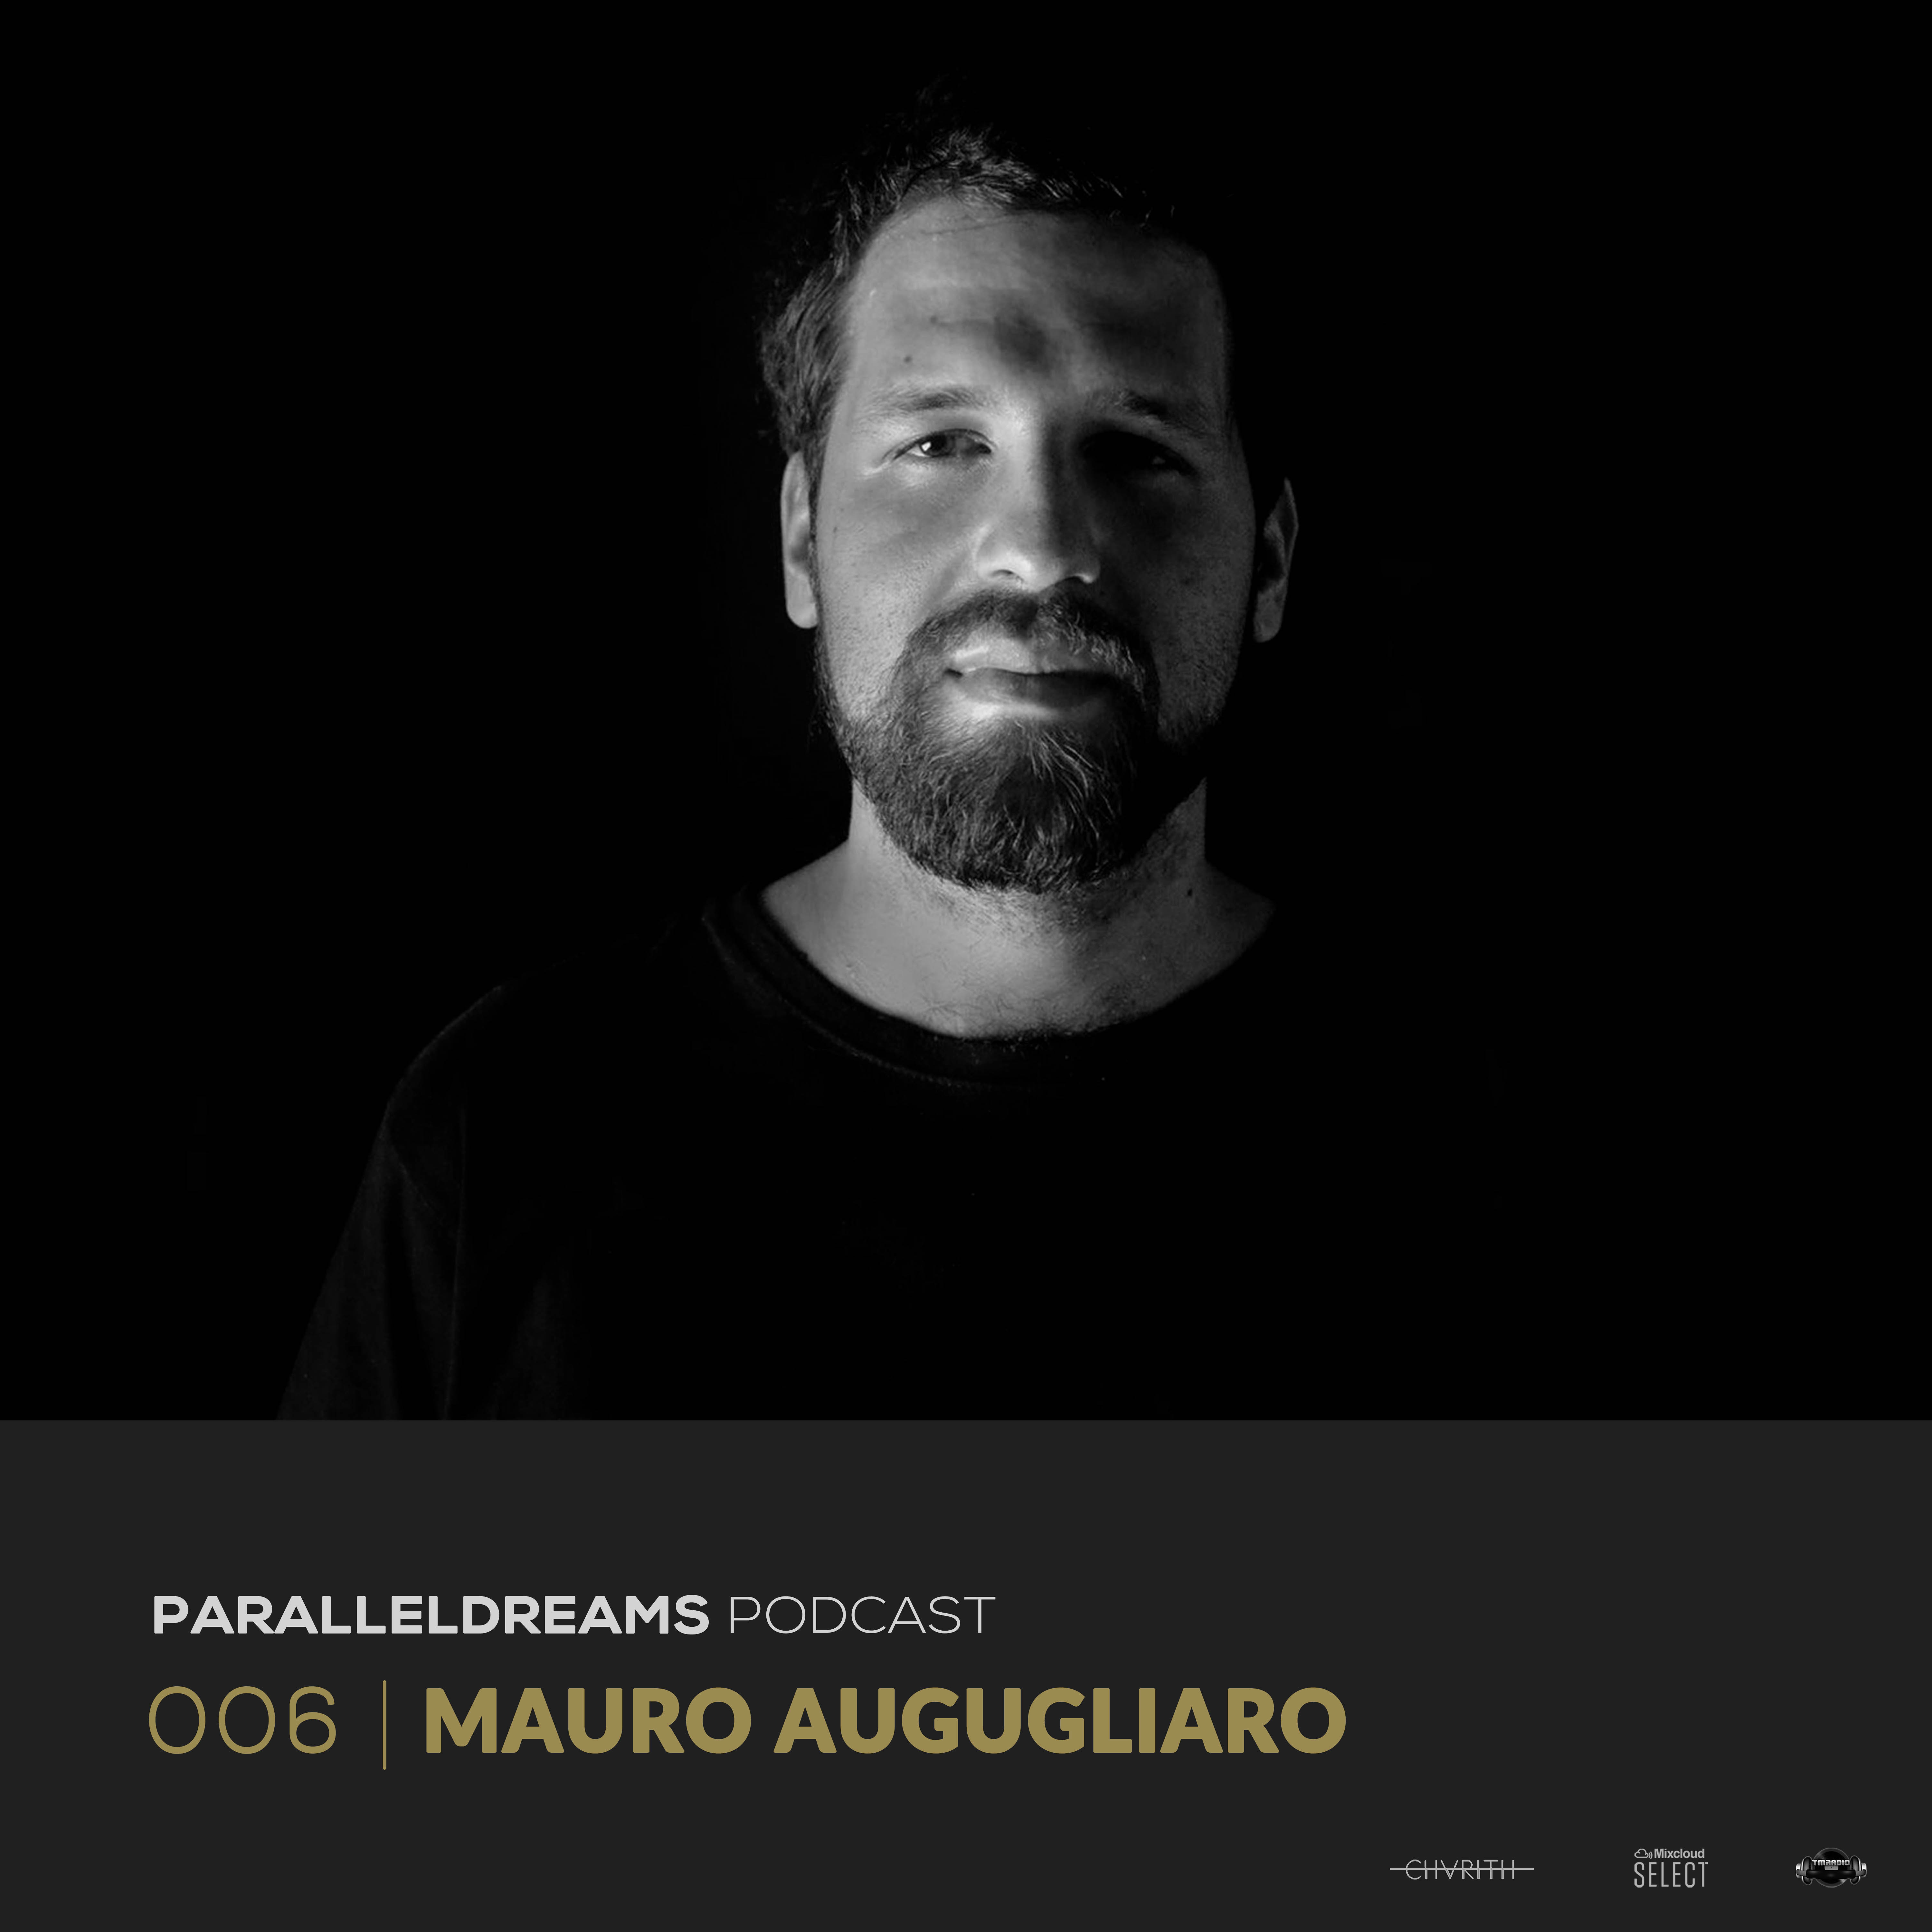 Parallel Dreams :: Episode 006 | MAURO AUGUGLIARO (aired on June 5th, 2020) banner logo